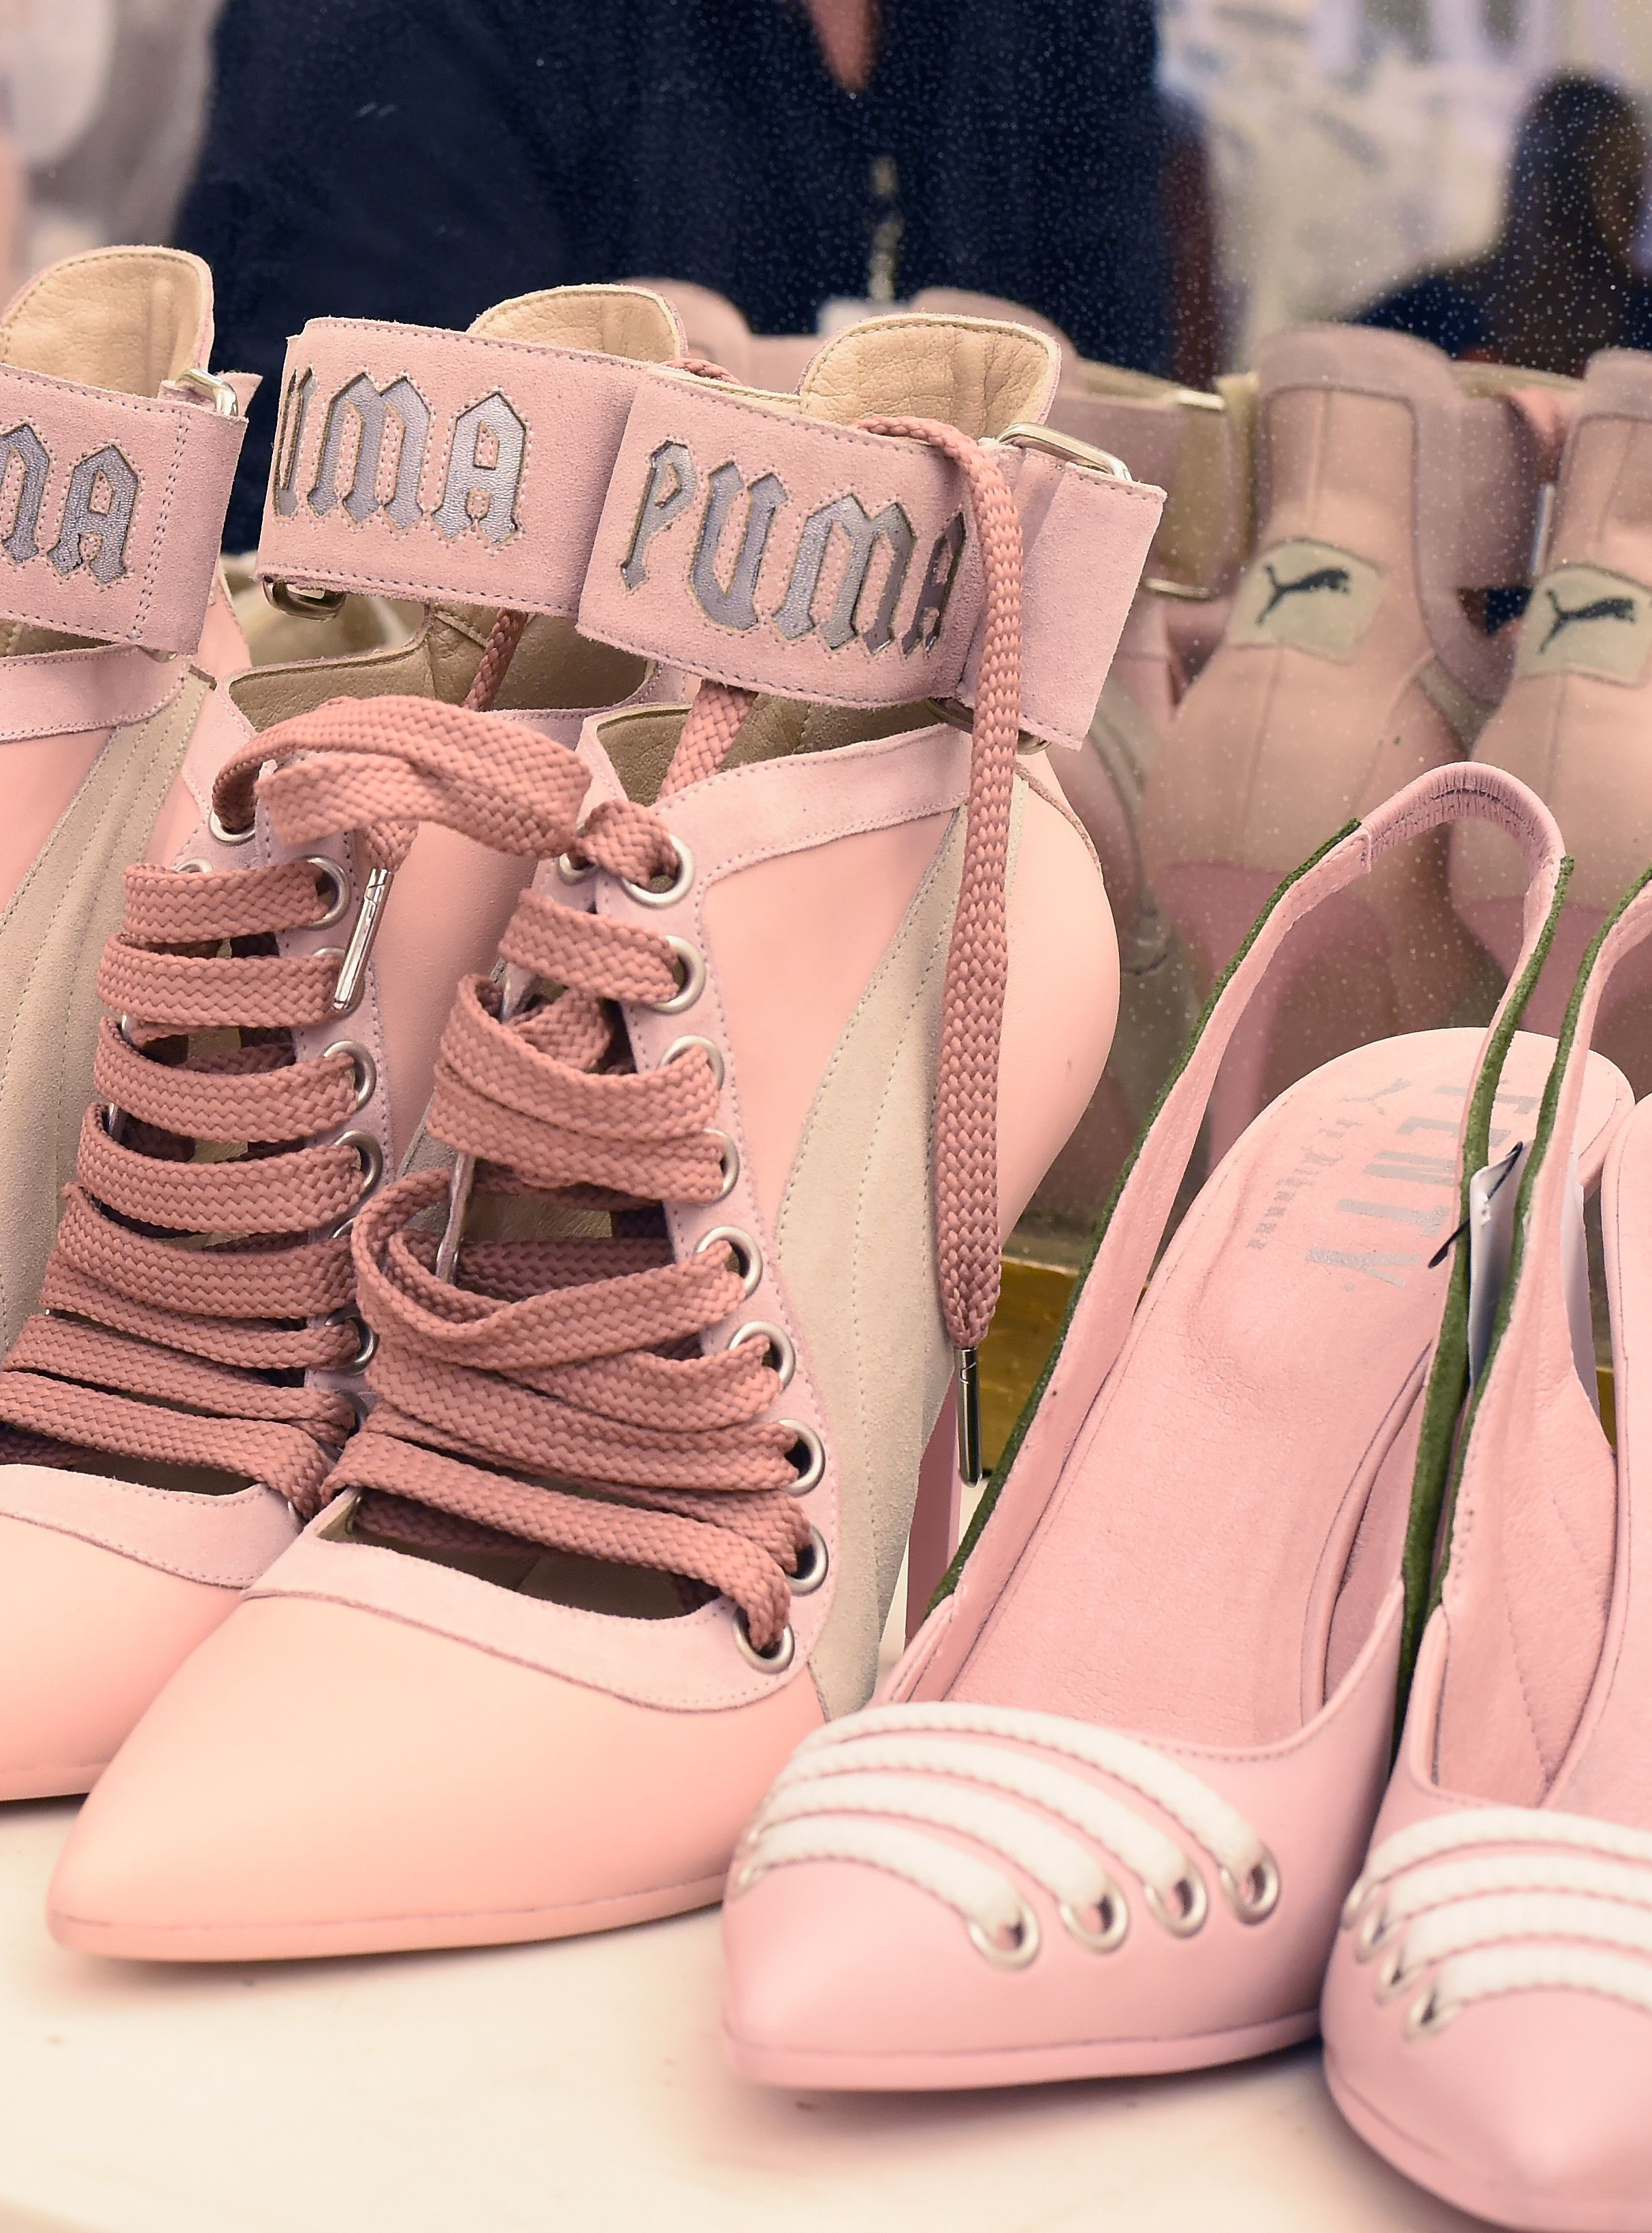 You Have To See The Spring Version Of Rihanna\'s Sell-Out Puma Shoes ...